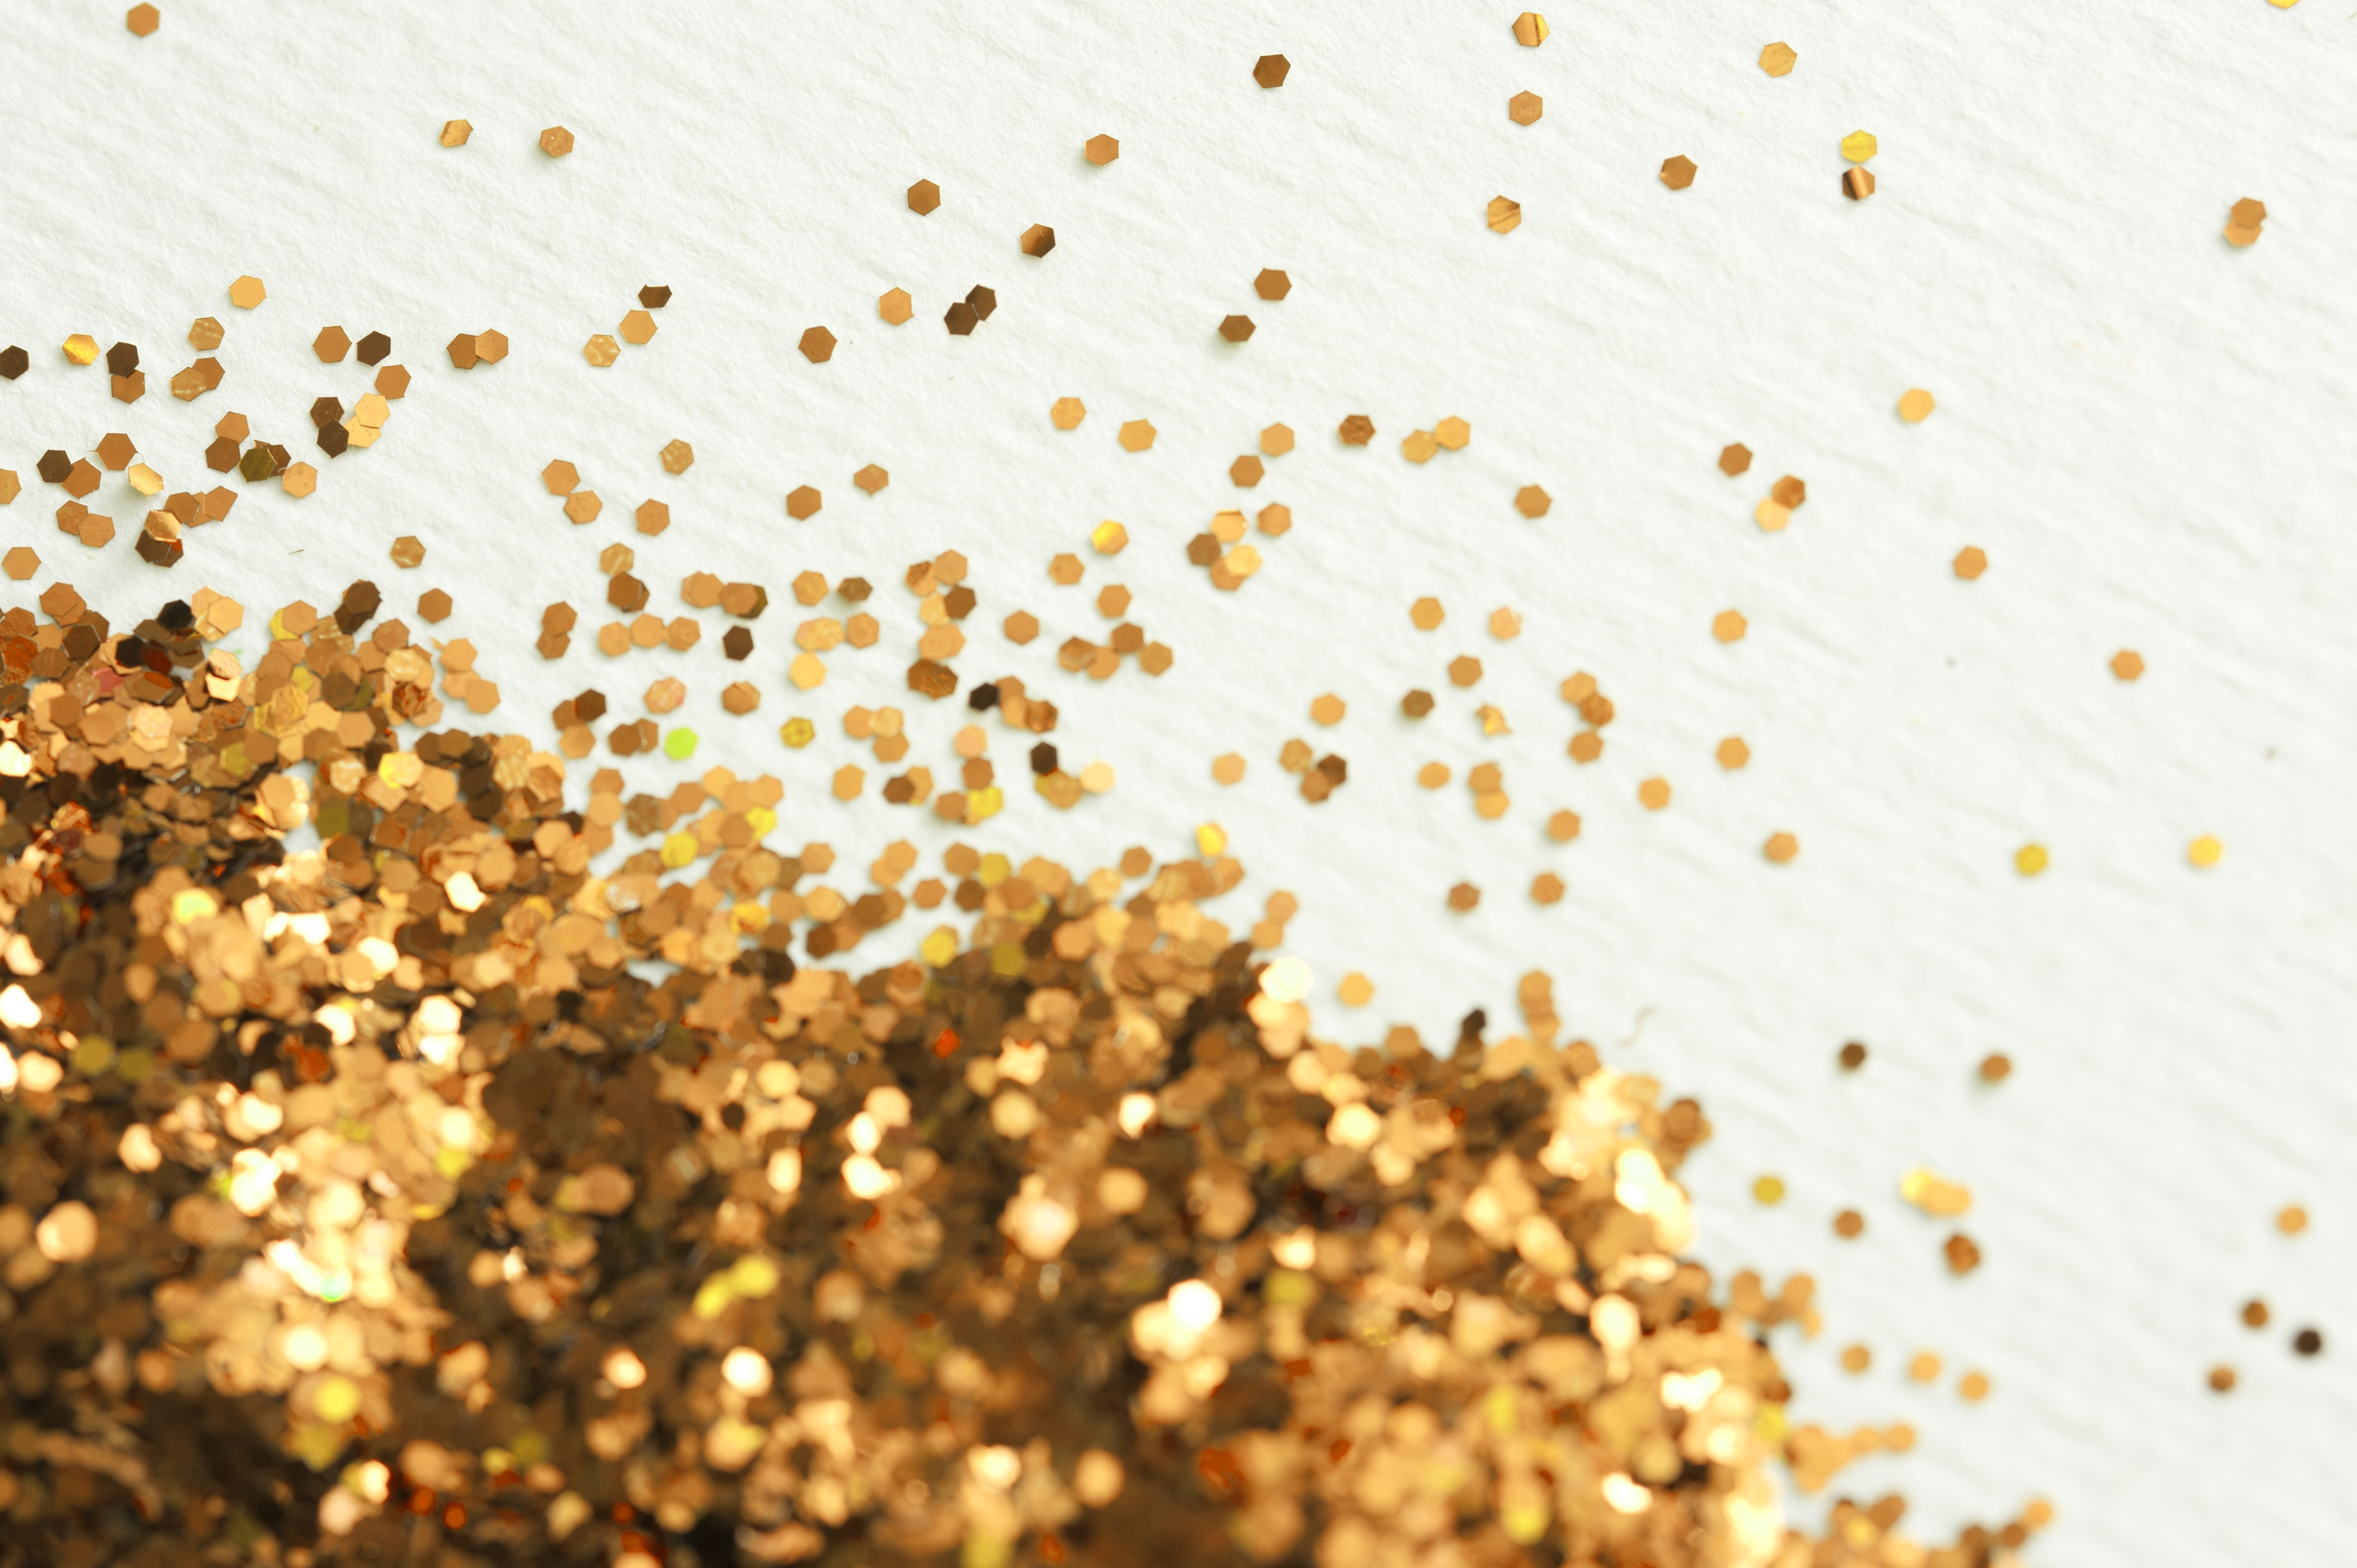 free image of gold glitter background